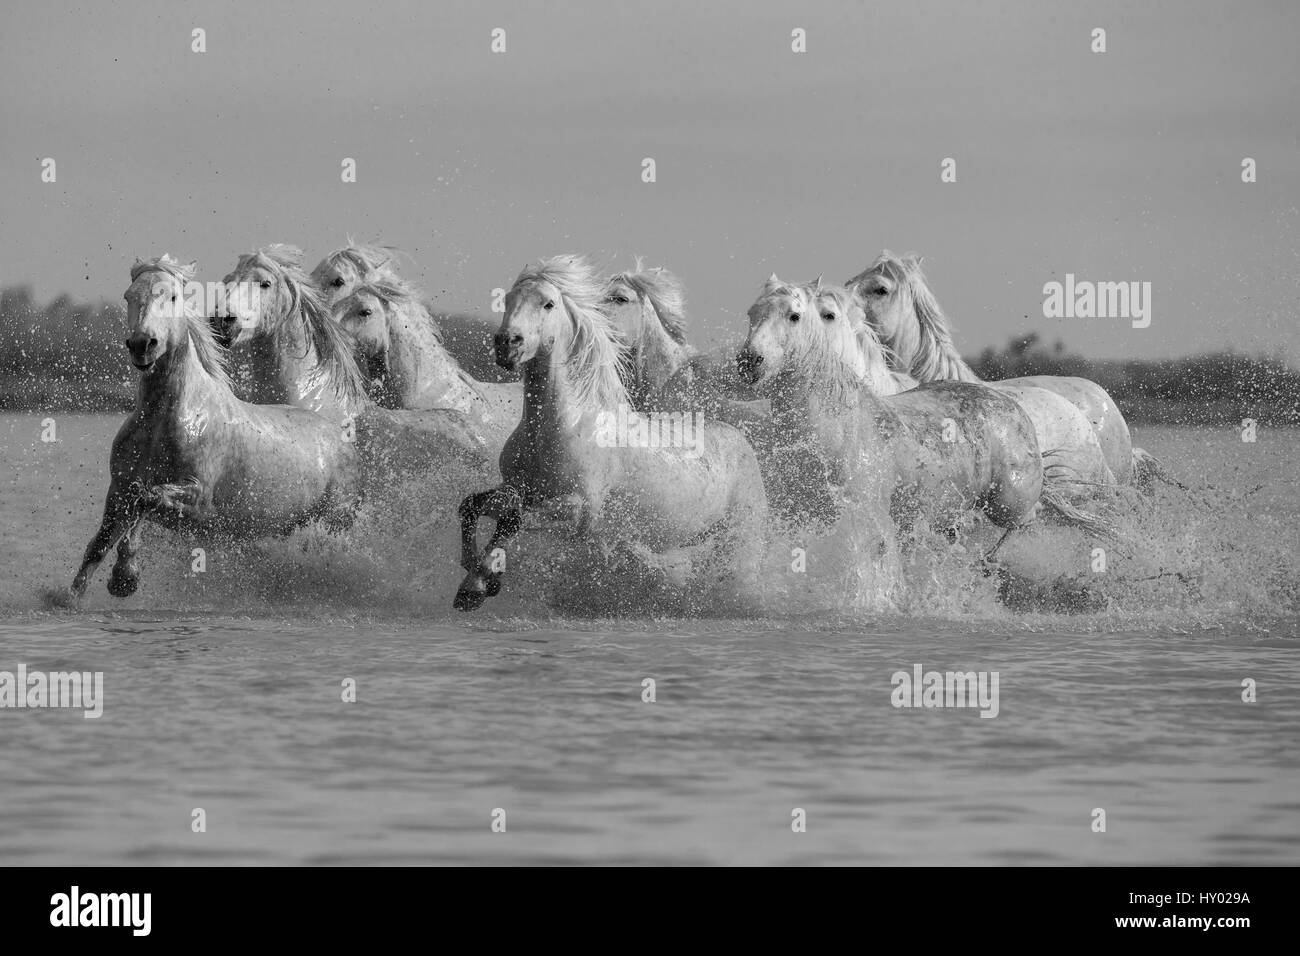 Nine white Camargue horses running through water, Camargue, France, Europe. May. - Stock Image